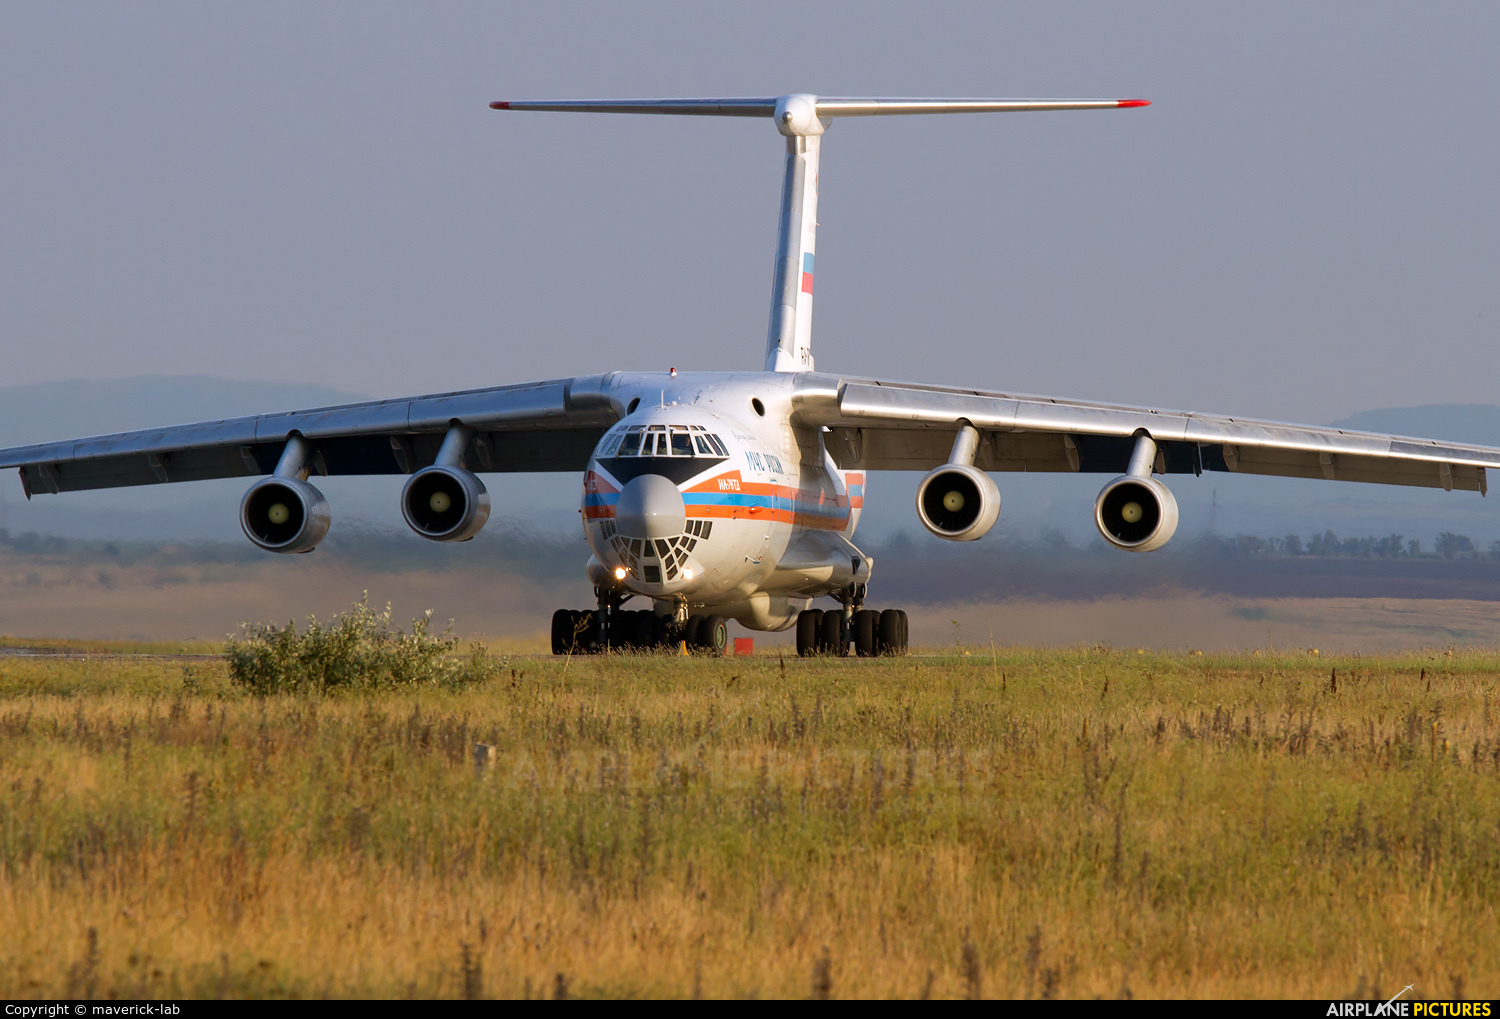 Russia - МЧС России EMERCOM RA-76429 aircraft at Simferepol Intl